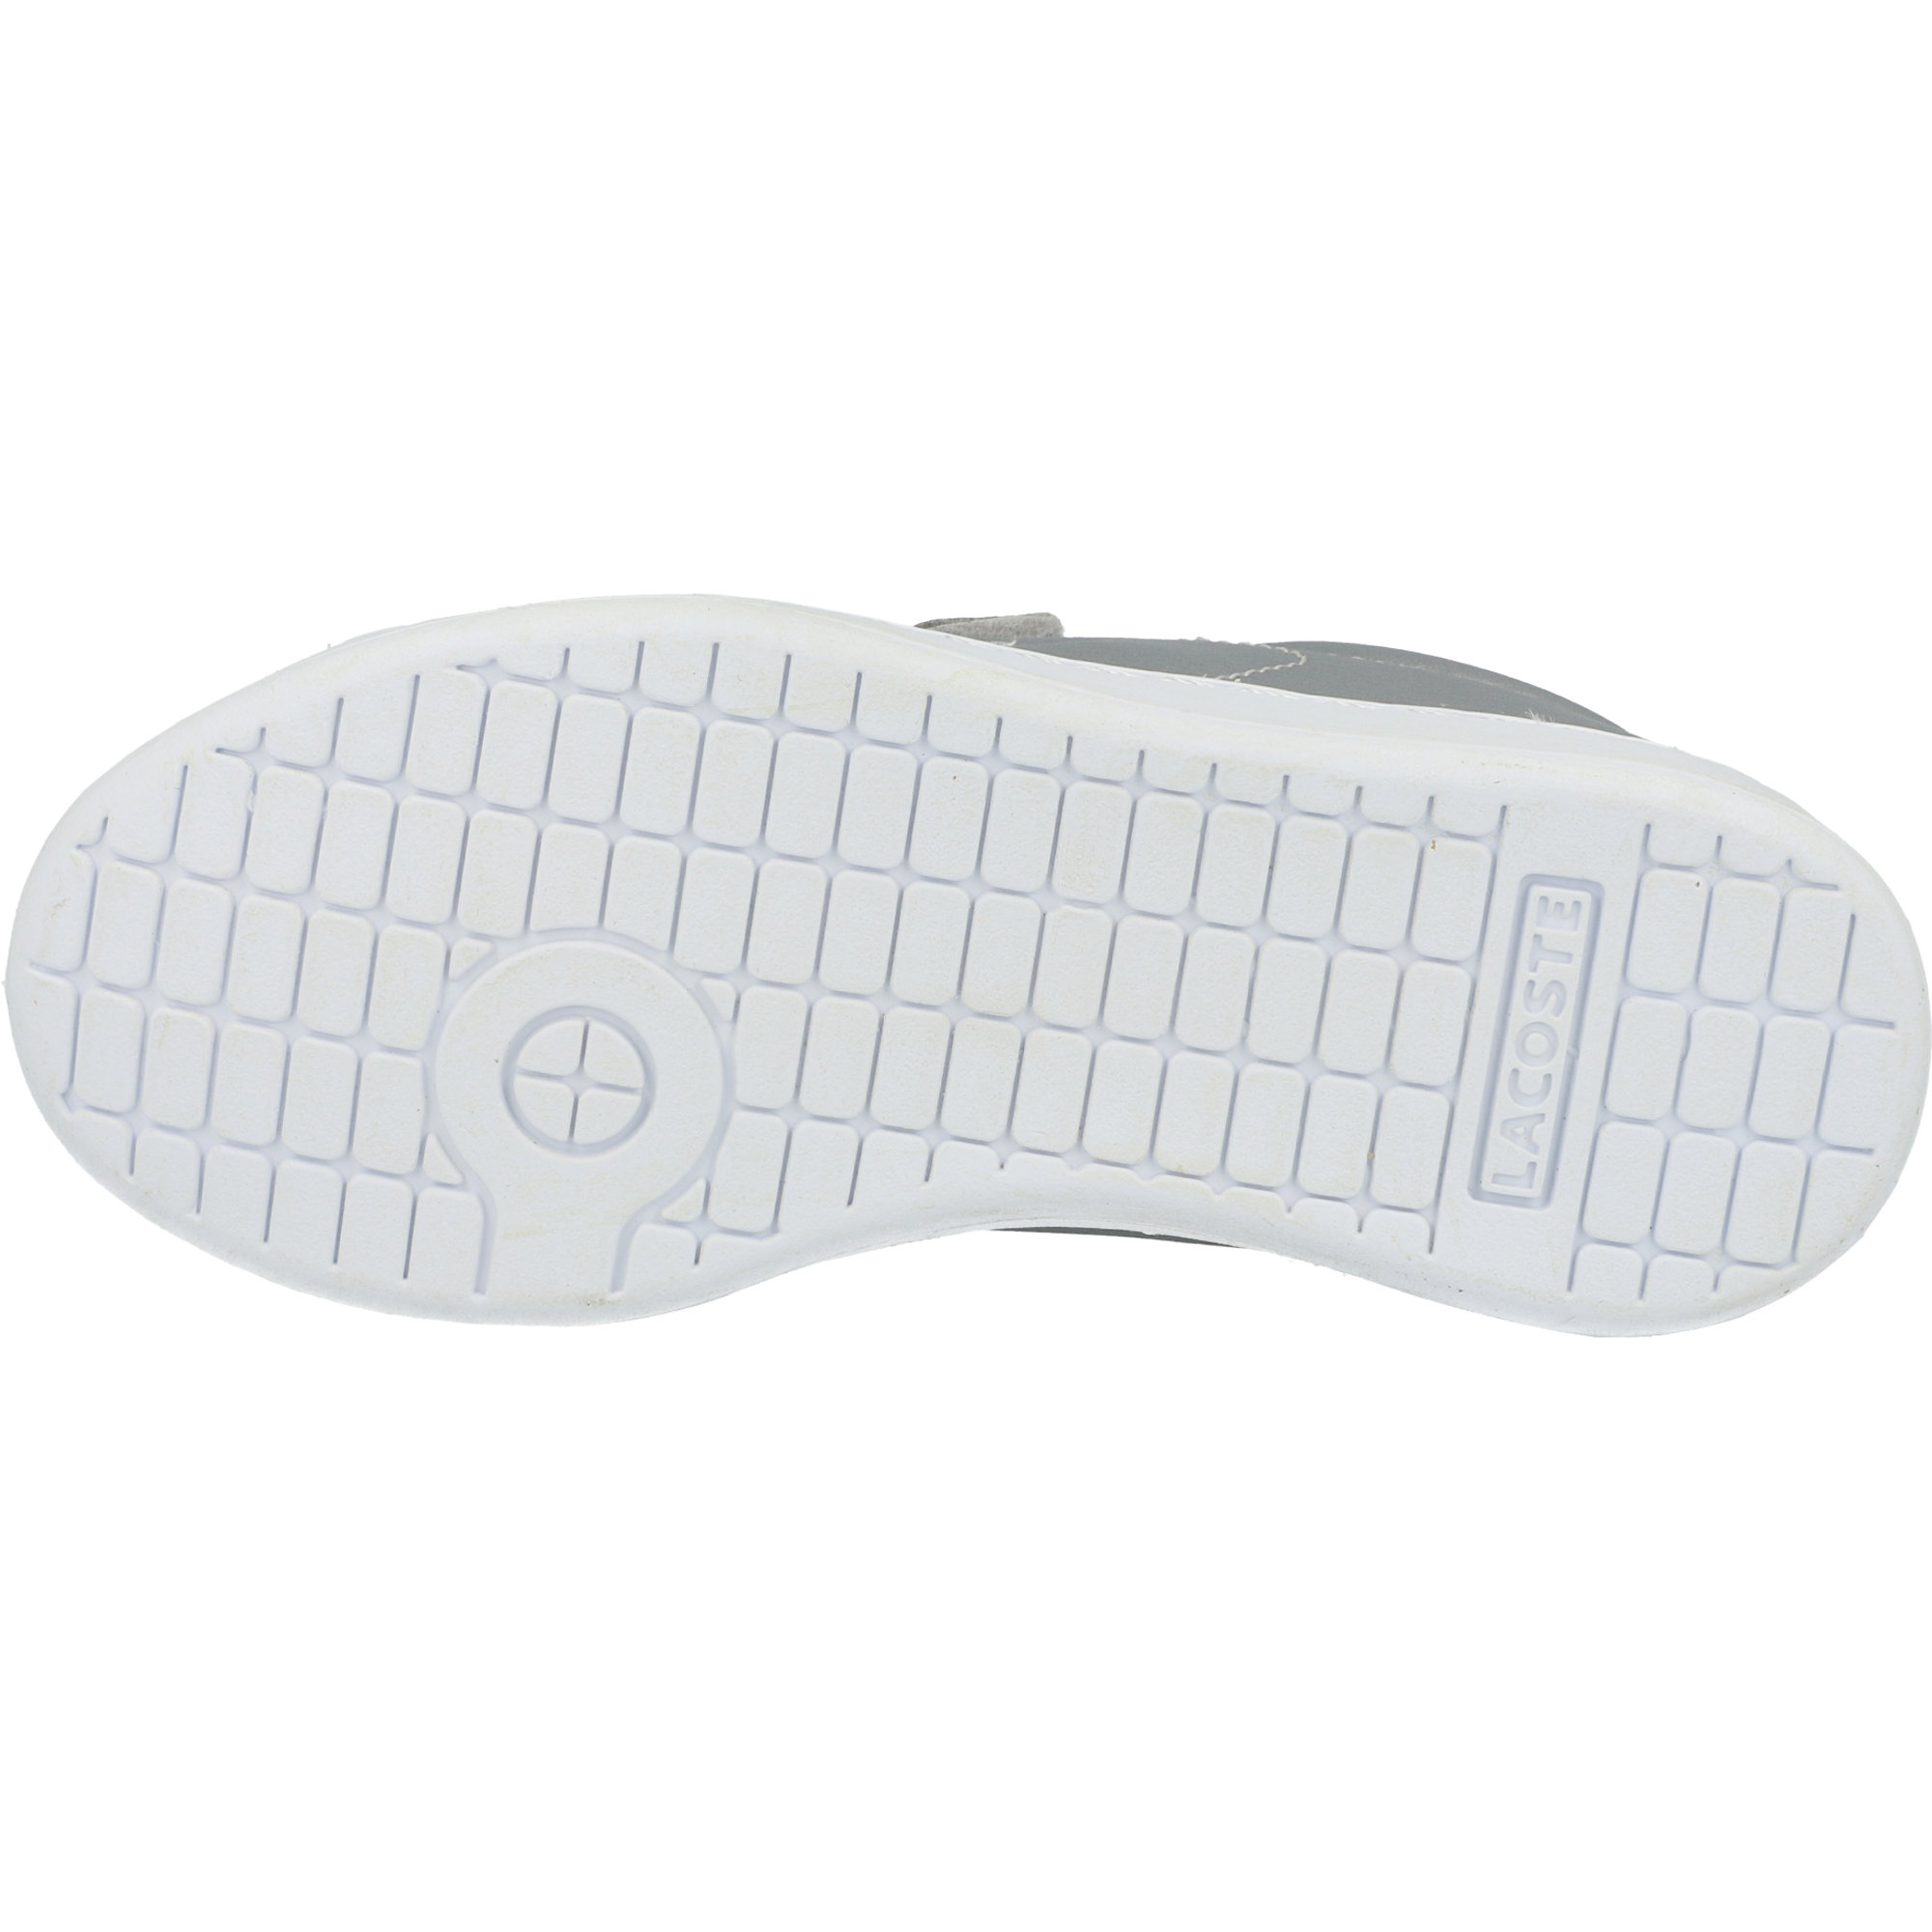 Lacoste Carnaby Evo Strap 319 2 Silver/White Synthetic